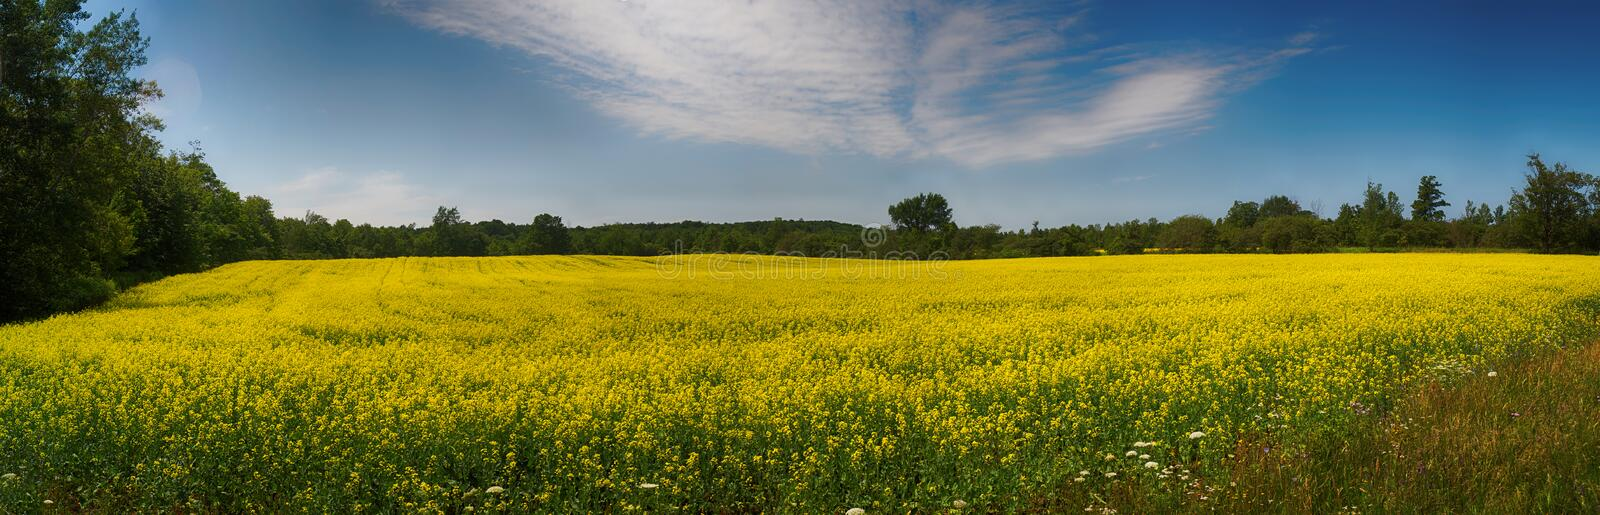 Panoramic view of blooming yellow rapeseed field in Collingwood, Ontario royalty free stock photography